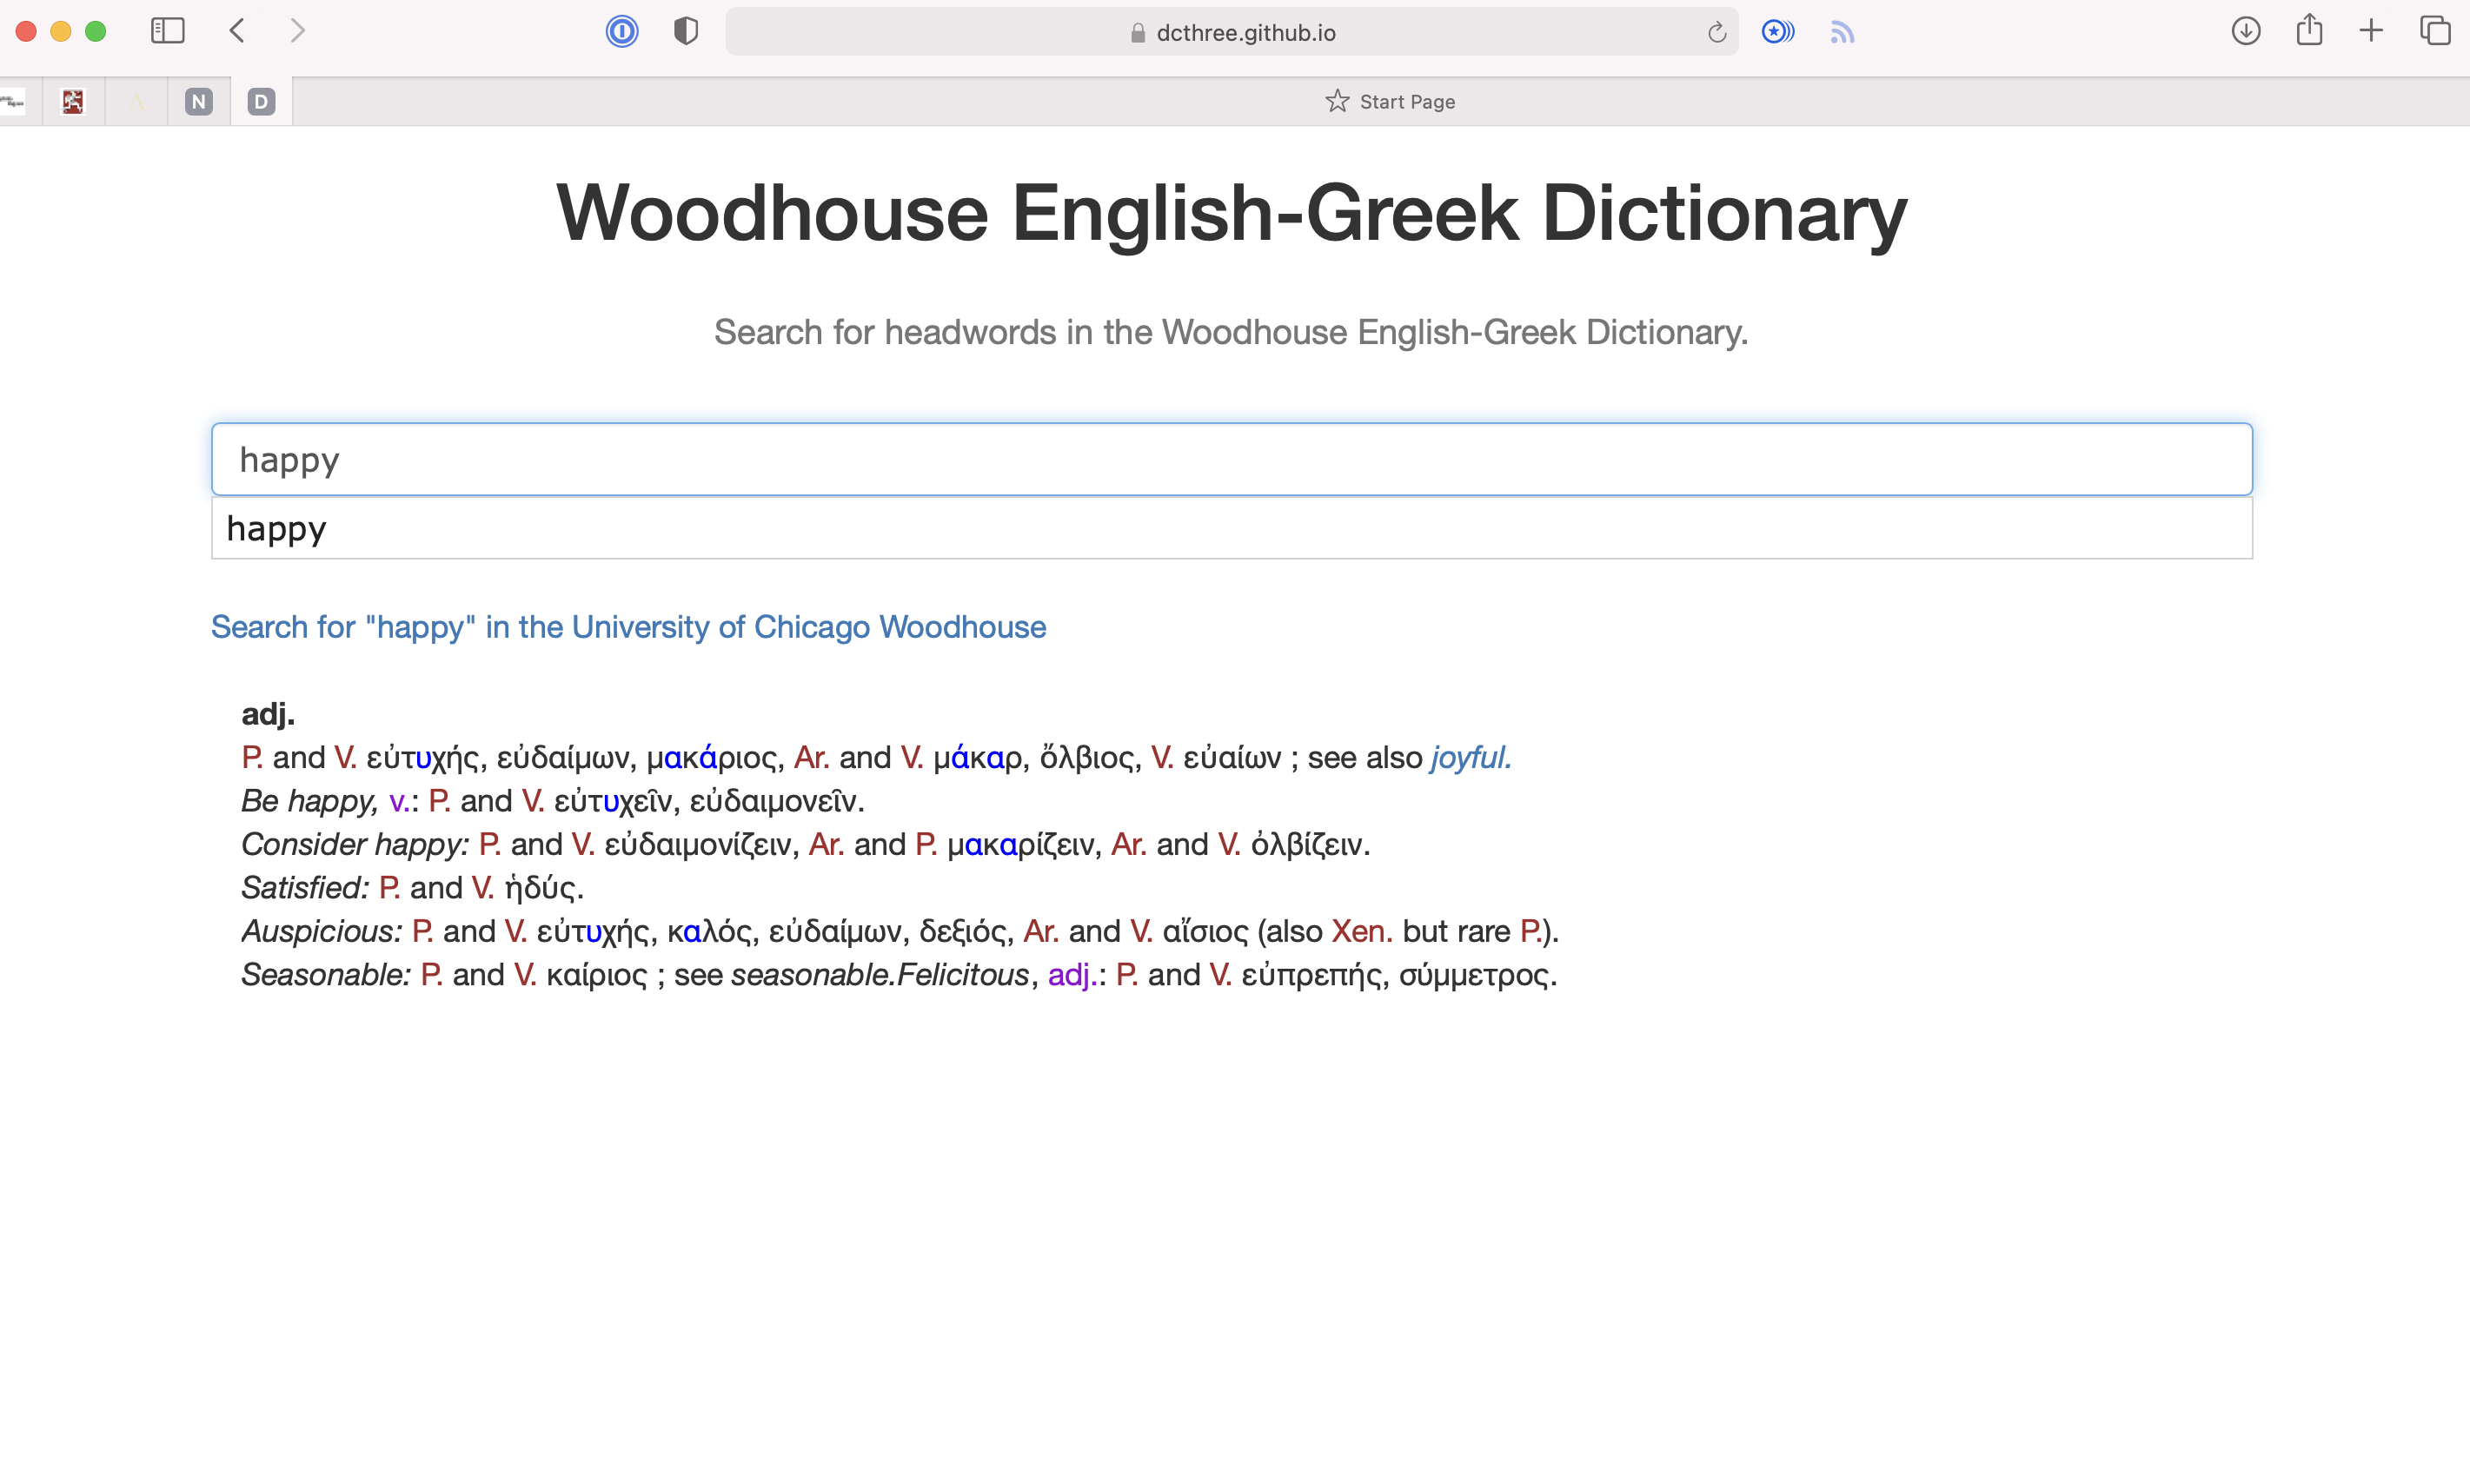 Woodhouse for English-Greek